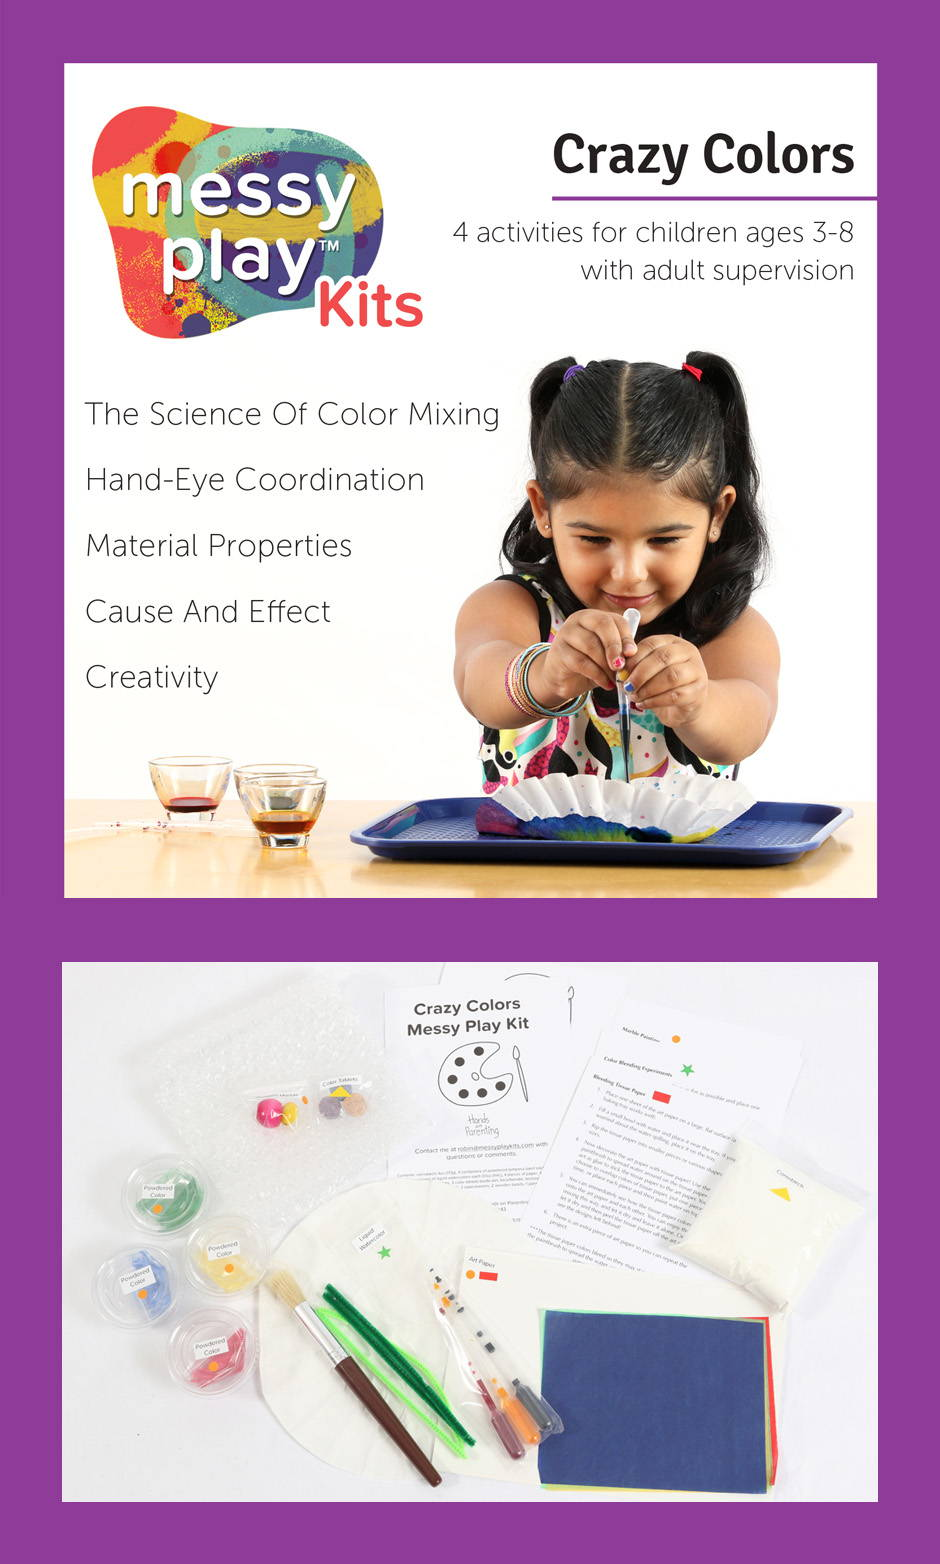 Crazy Colors Messy Play Kit contains 4 activities that teach the science of color mixing, hand-eye coordination, material properties, cause and effect, and creativity.